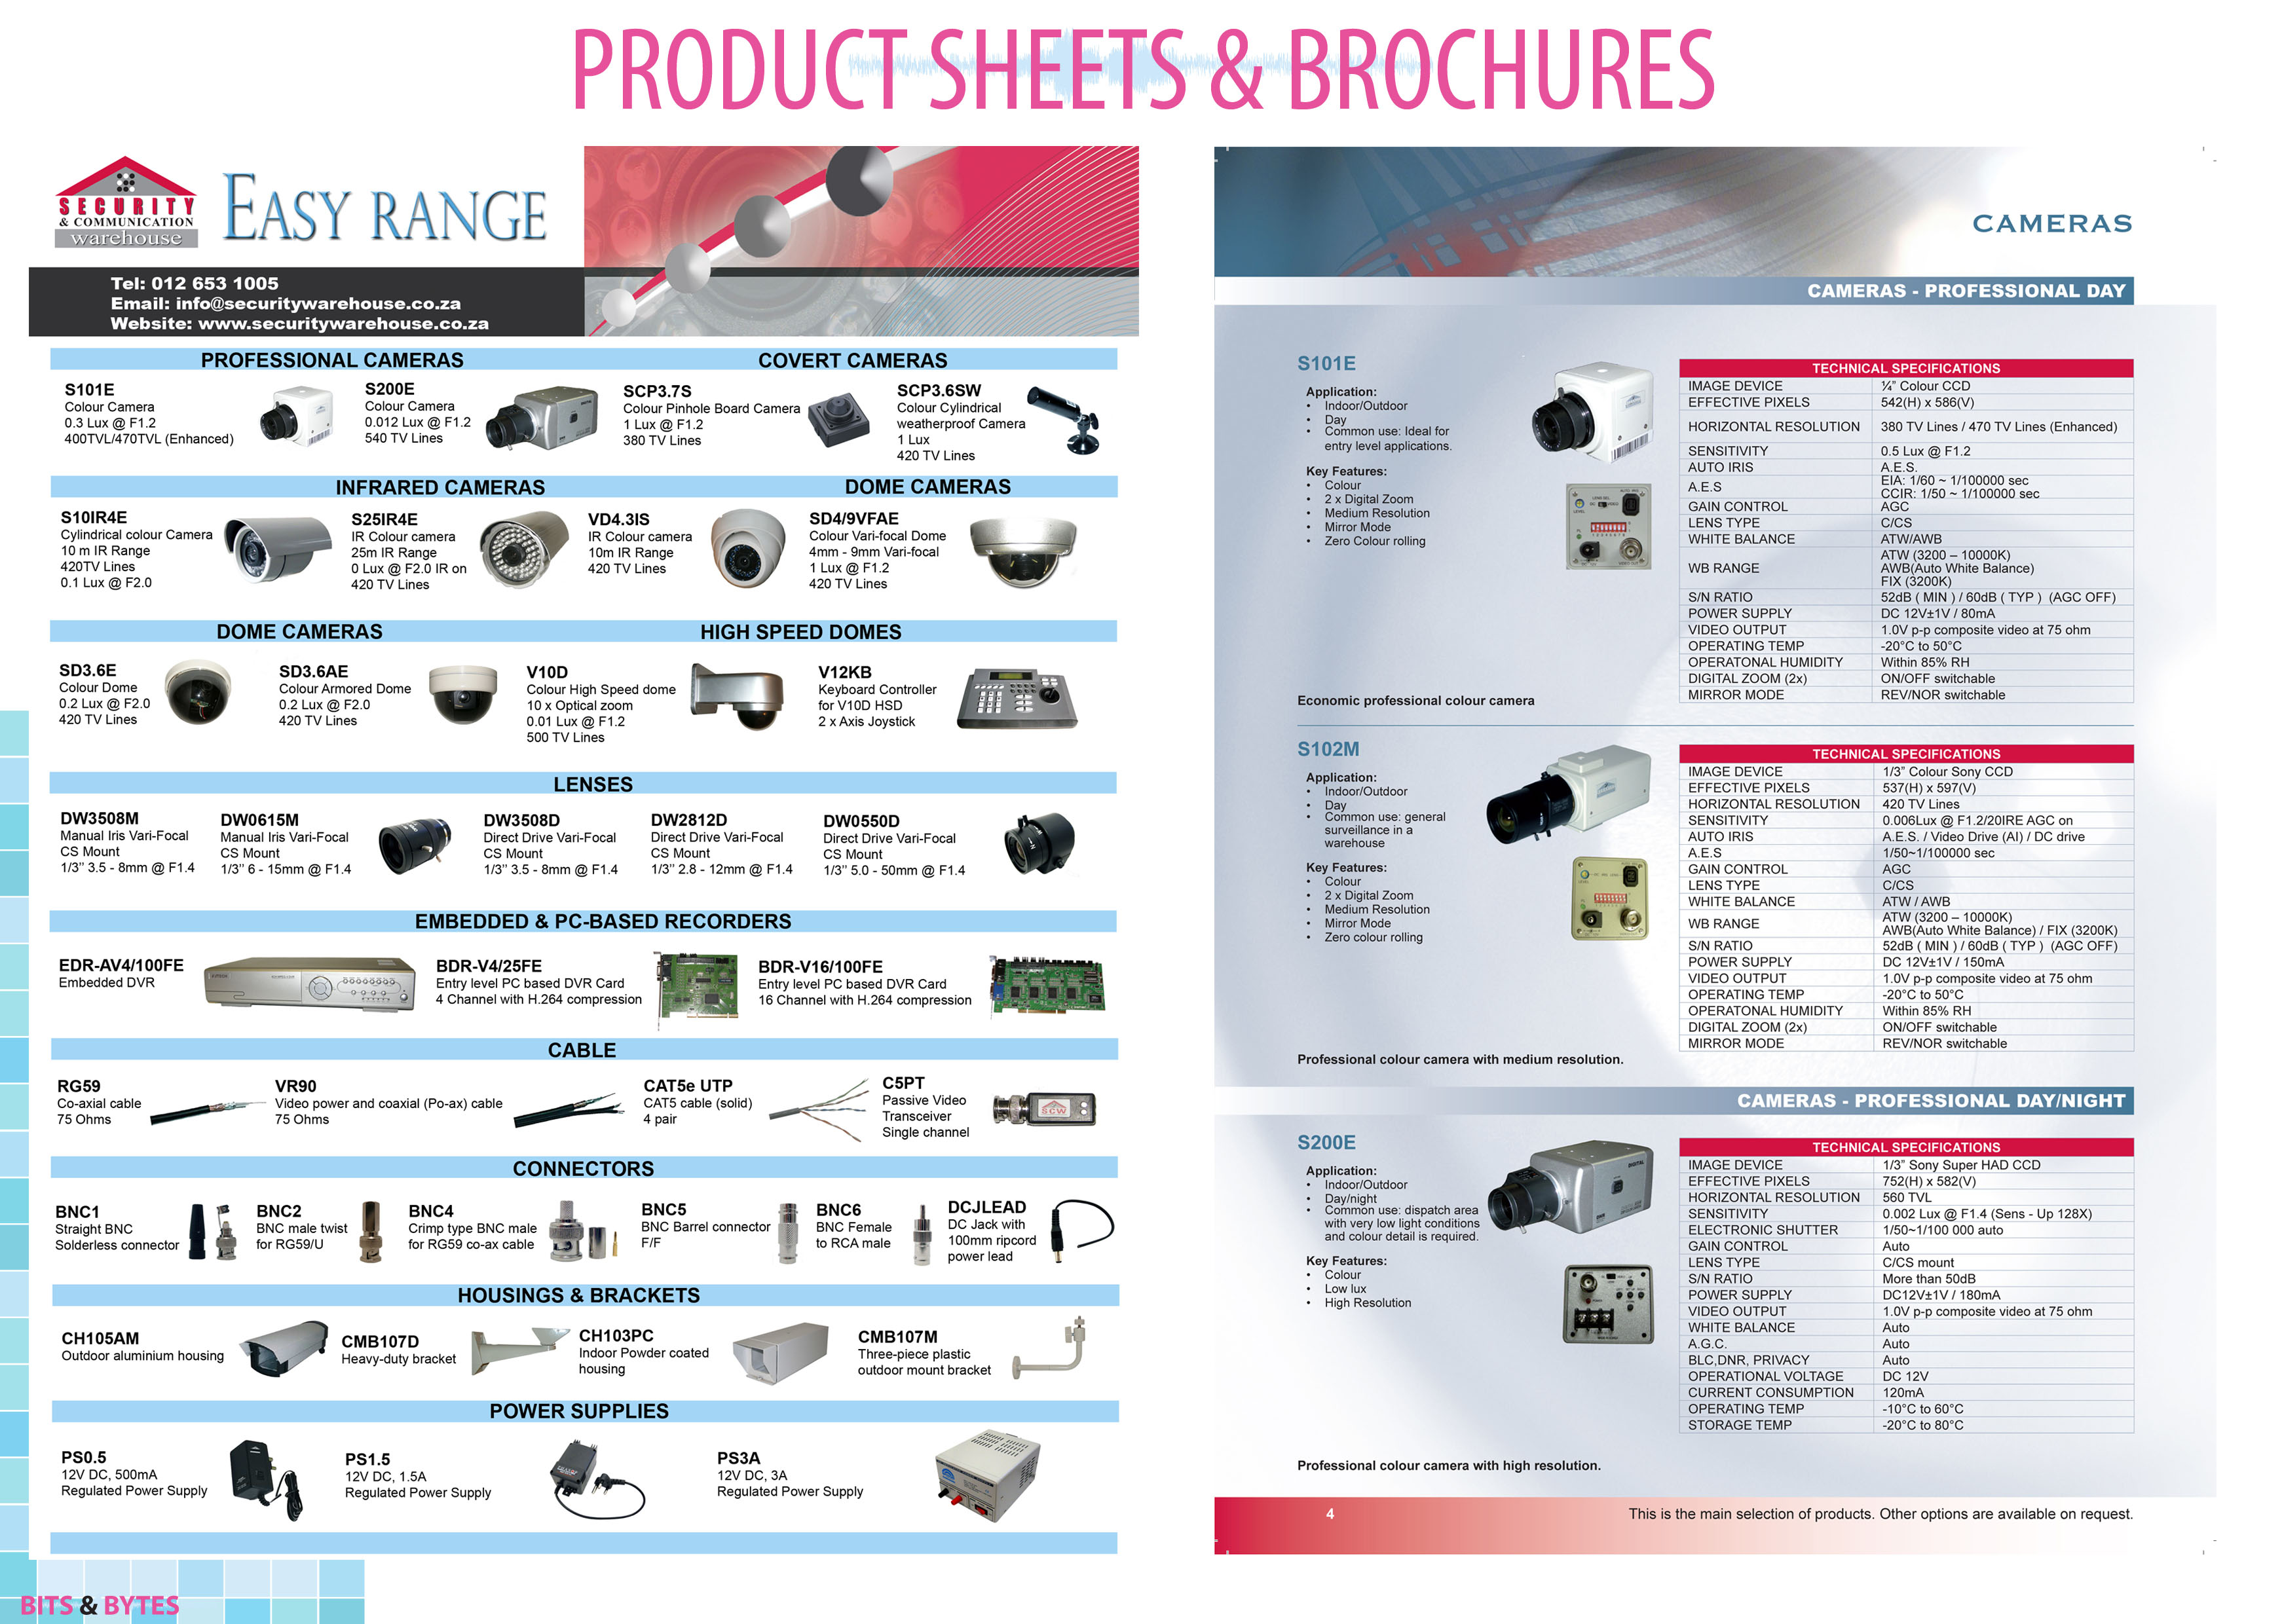 Product Sheets & Brochures